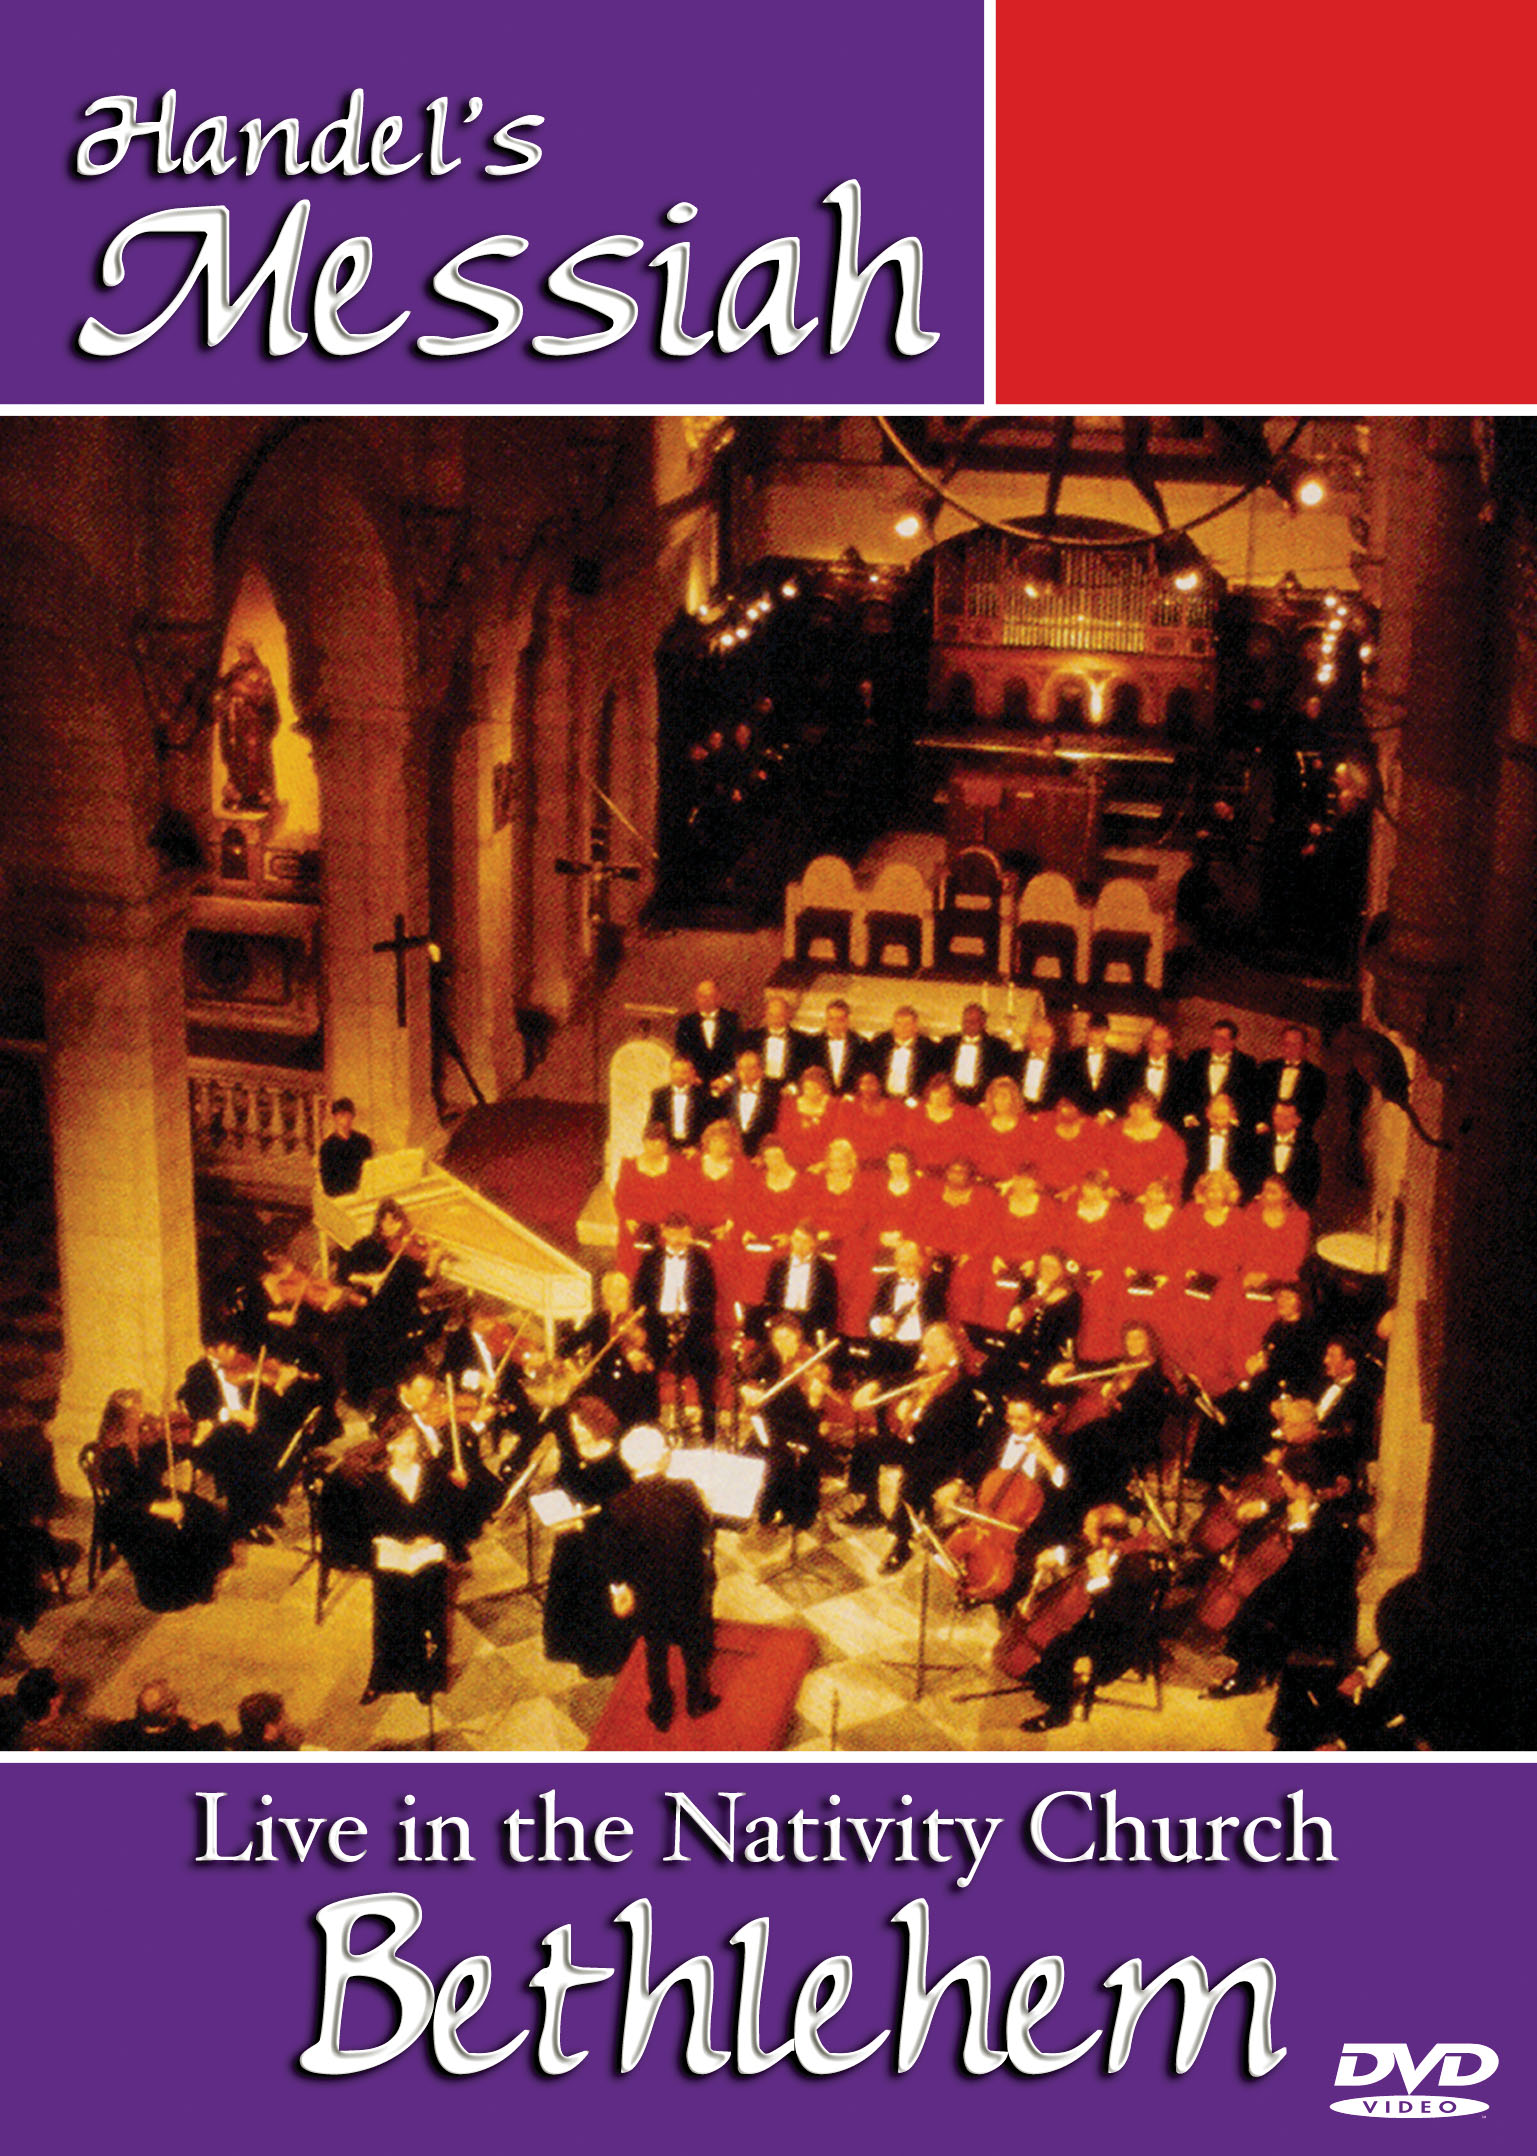 Handel's Messiah: Live in Nativity Church - Bethlehem